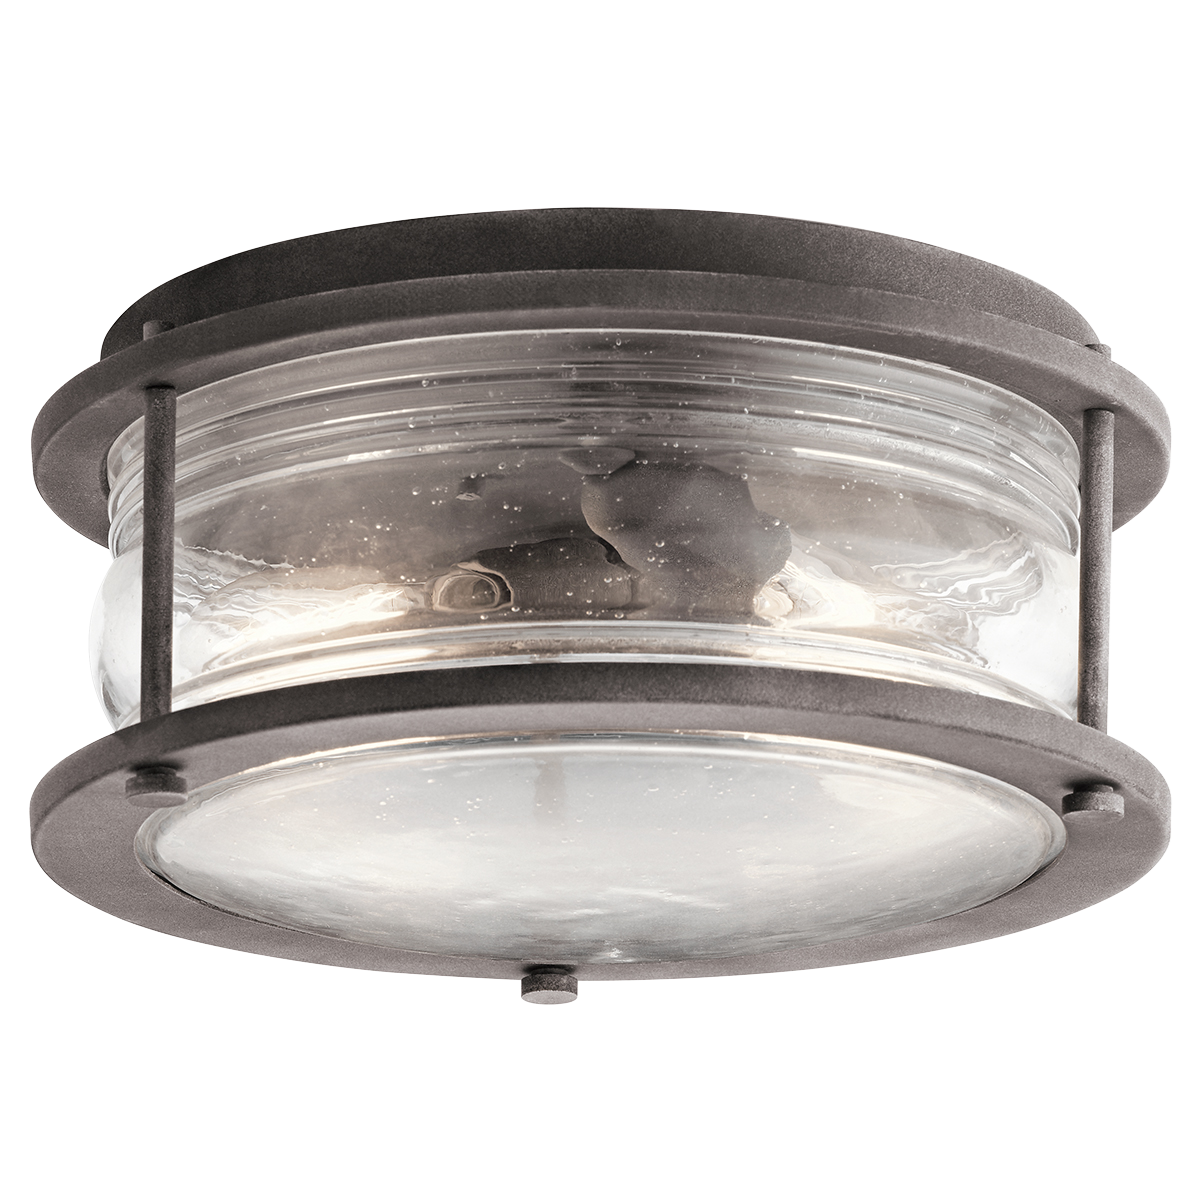 Ashland bay 2 light outdoor ceiling light in weathered zinc wzc shop kichler lighting ashland bay 2 light outdoor ceiling light at lowes canada find our selection of outdoor flush mount lighting at the lowest price arubaitofo Choice Image